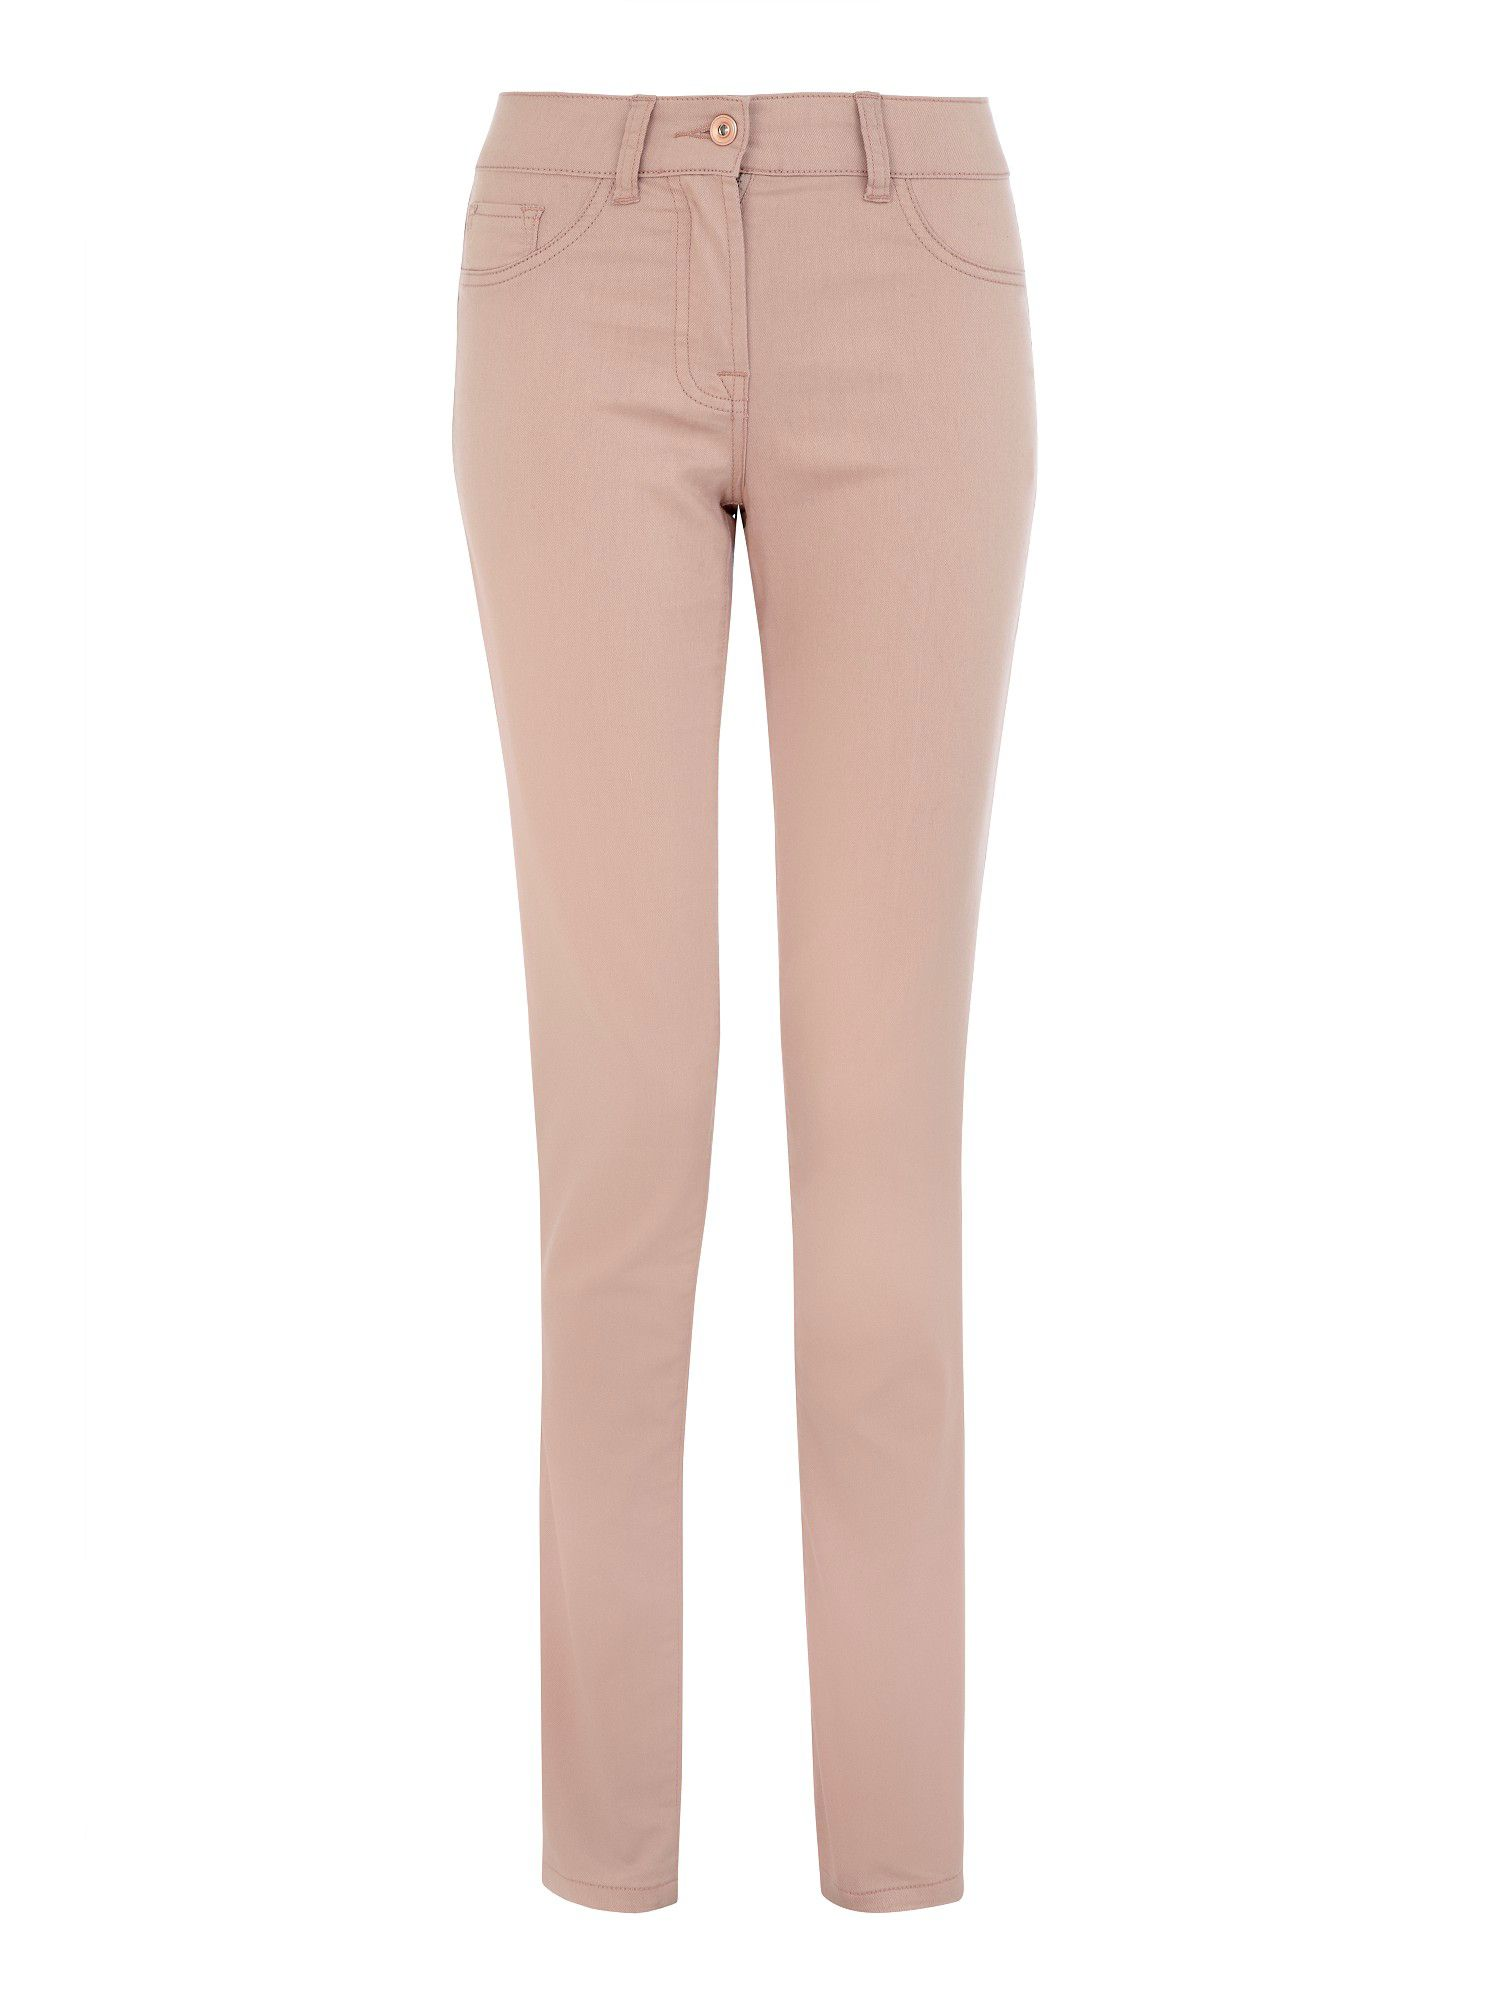 Peach jeggings